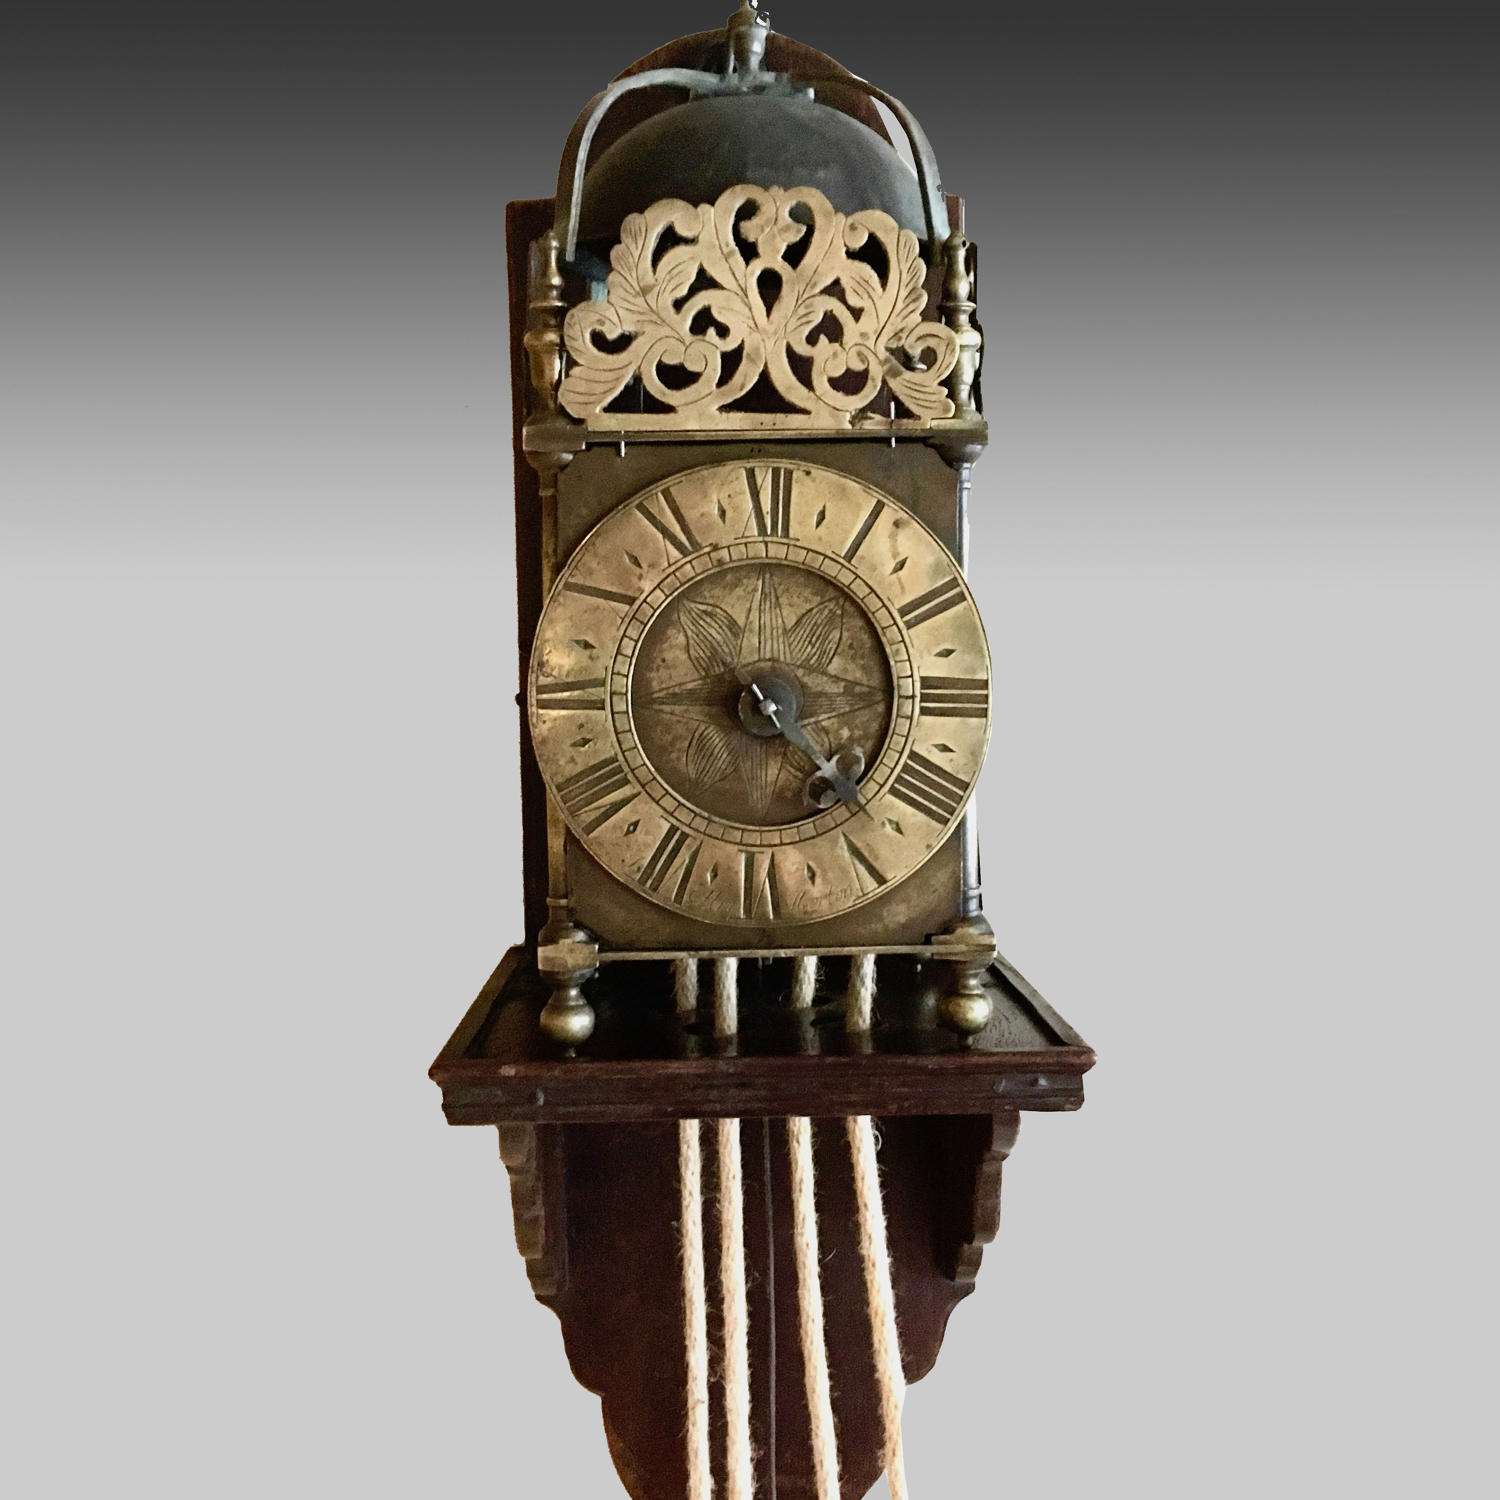 18th century brass lantern clock